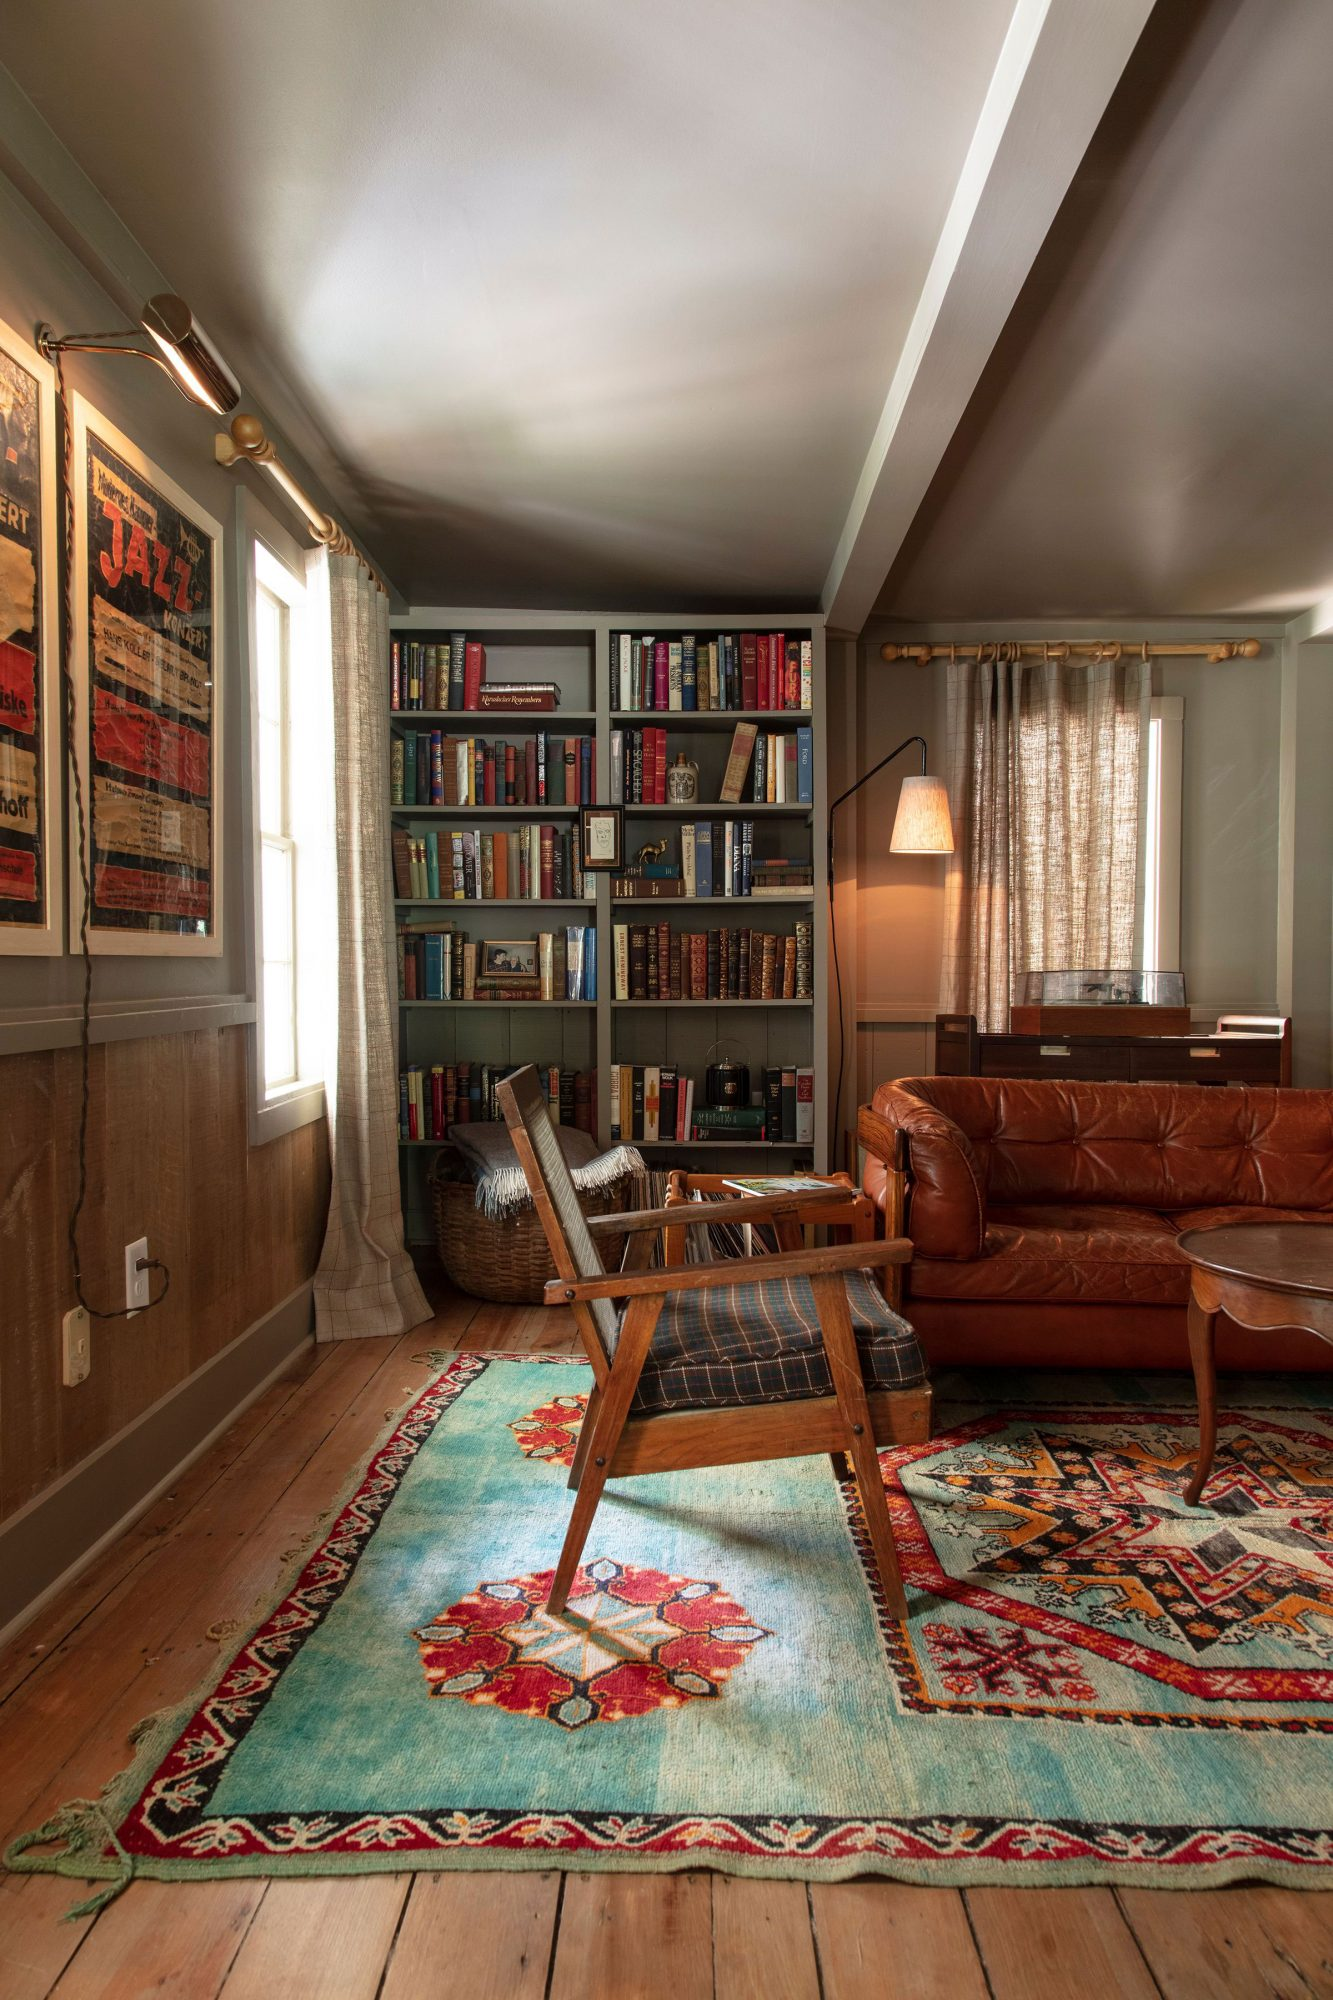 Home Office with Dark Paint and Built-In Bookshelves